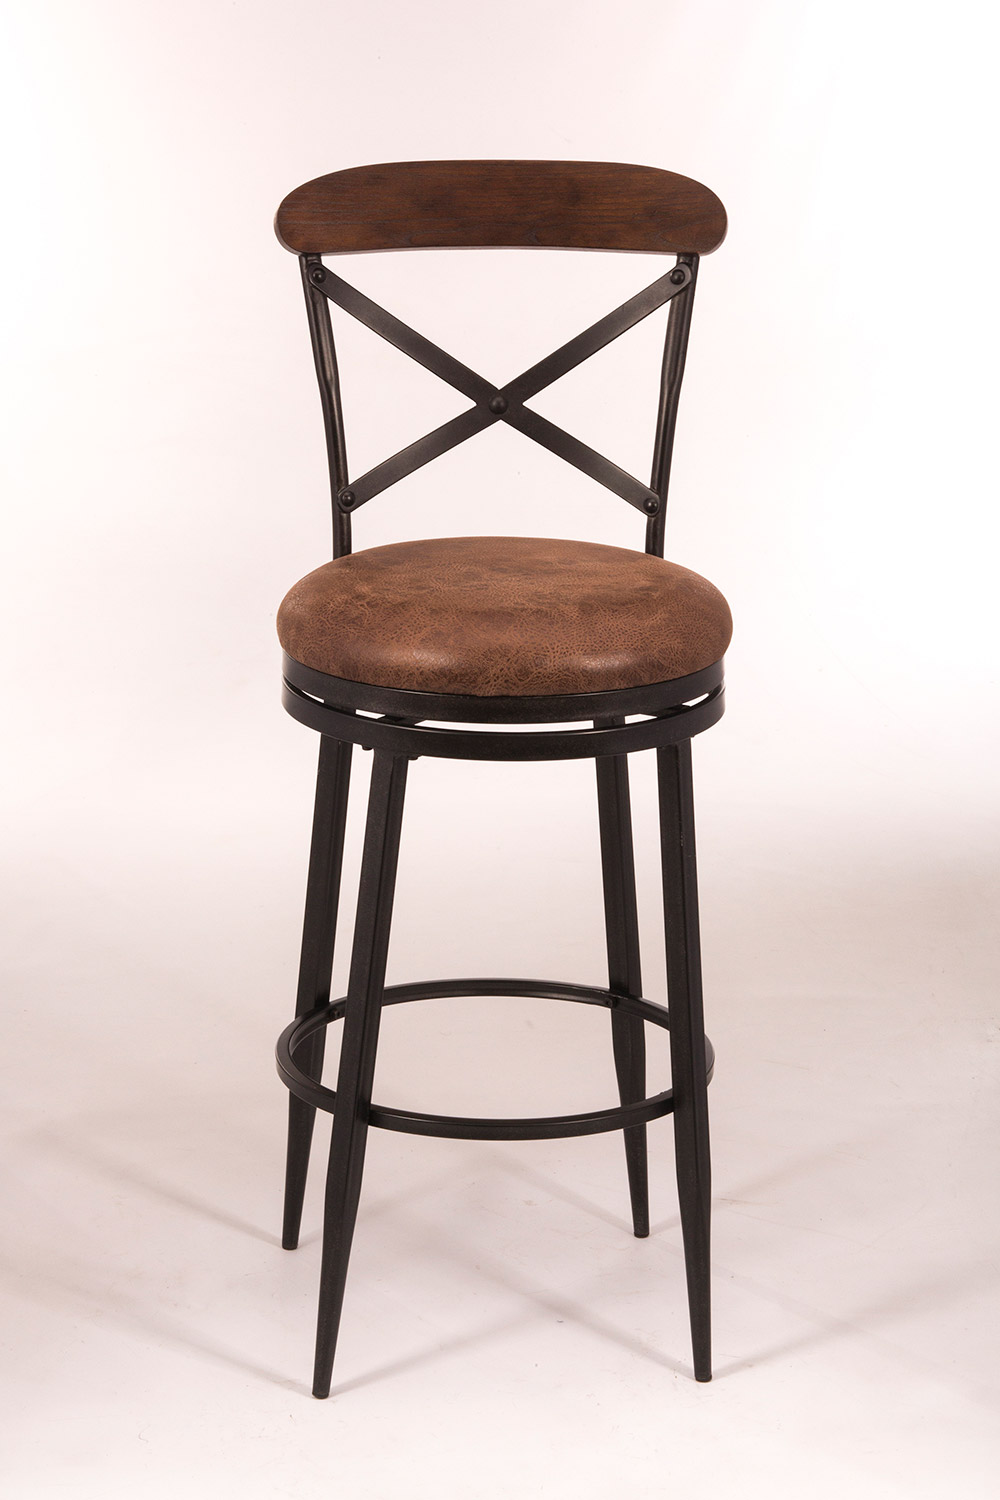 Hillsdale Henderson Swivel Bar Stool - Black/Brown Wood Top